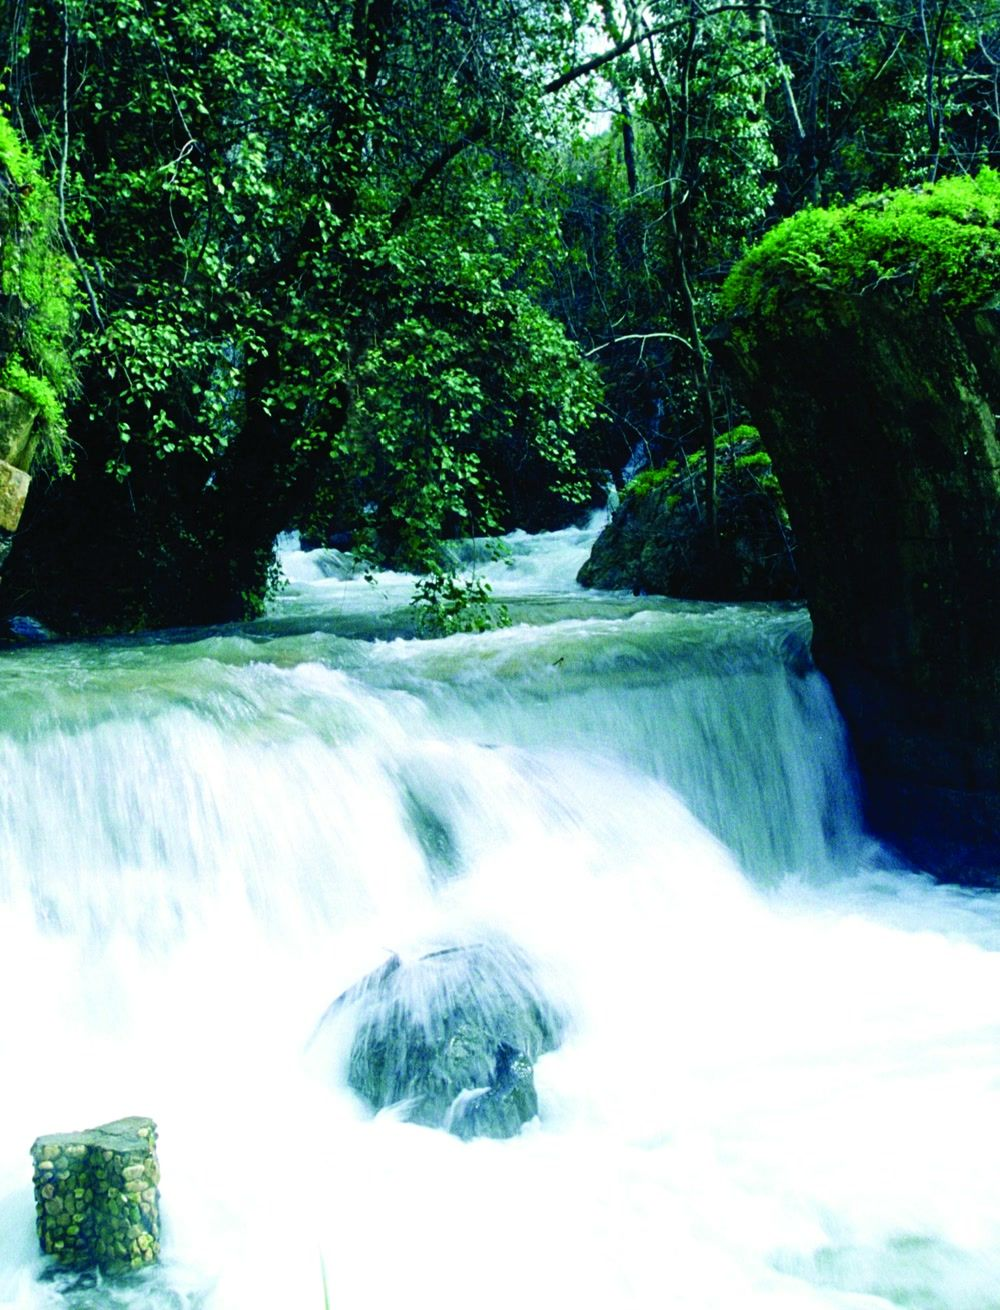 title: Picturesque Natural Waterfall Scenery of Kfarhim in Lebanon